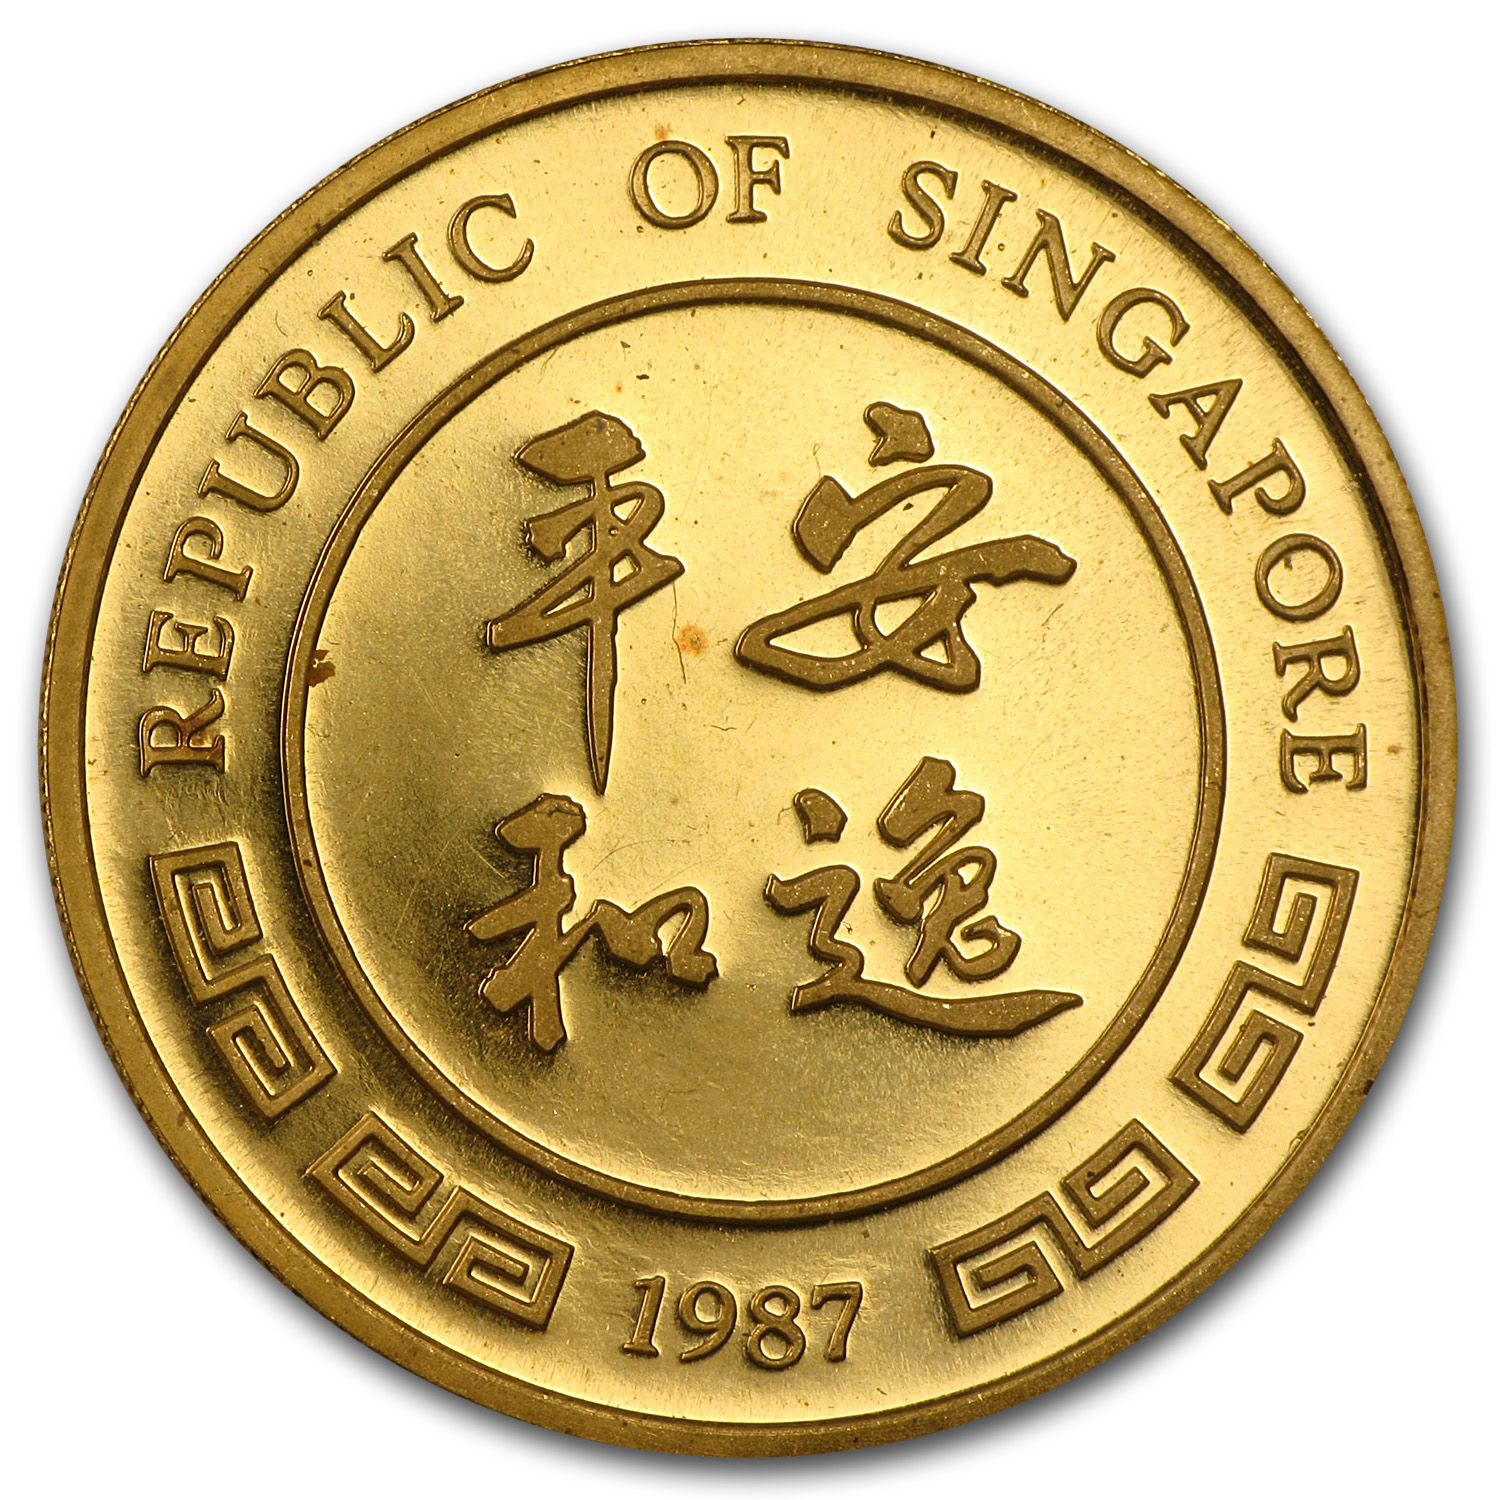 1987 Singapore 1 oz Gold 100 Singold Rabbit Proof-Like